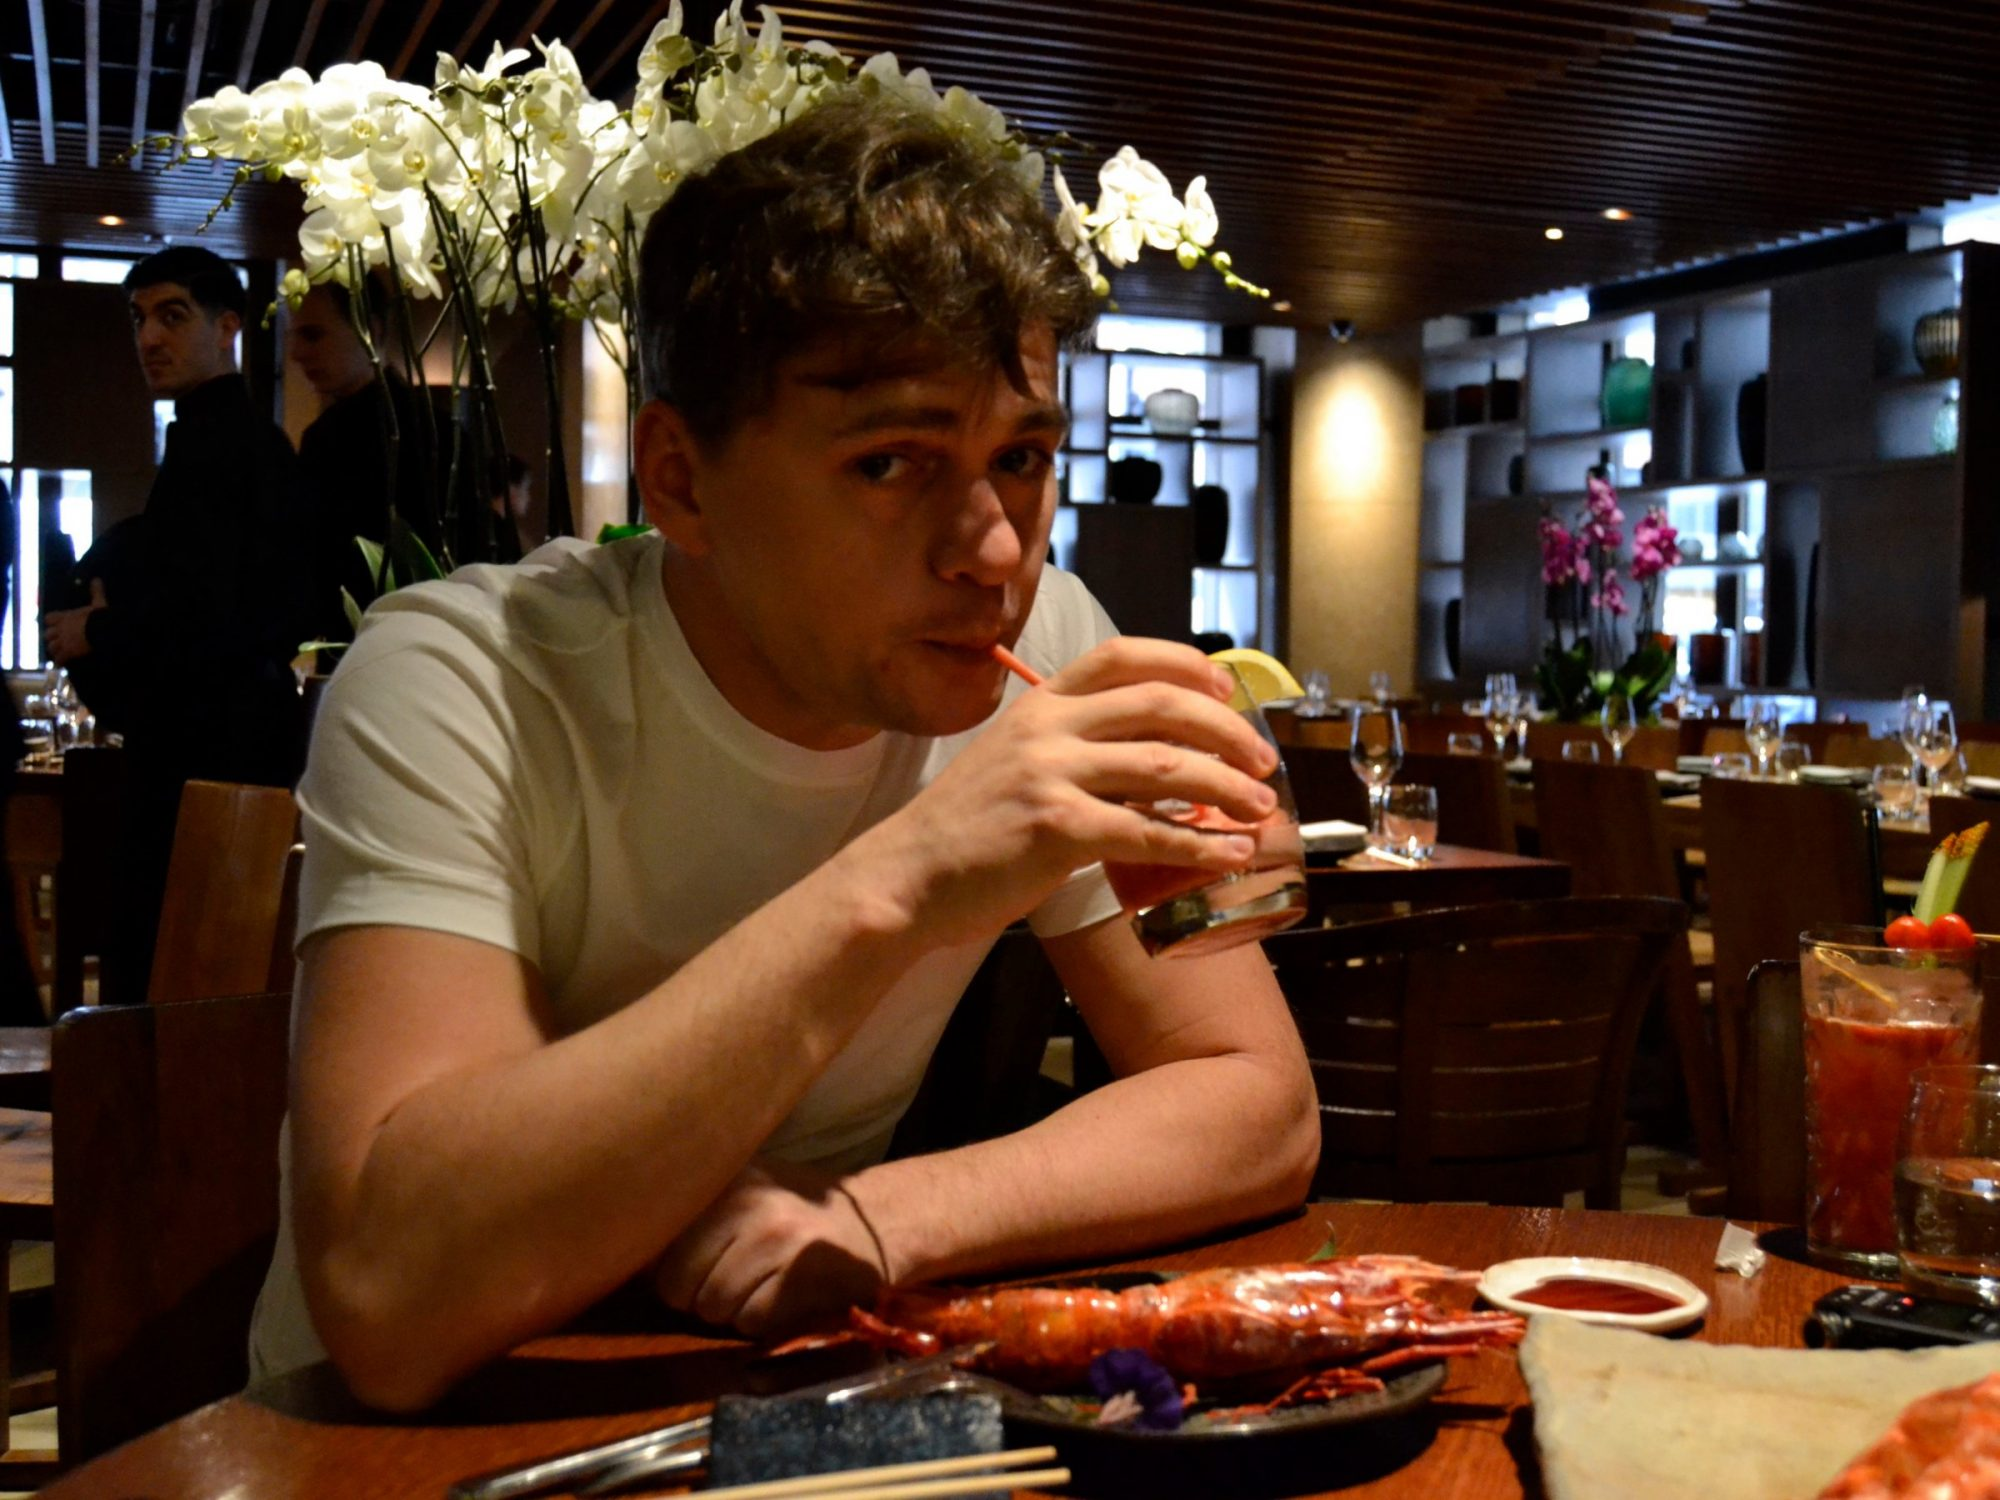 andrey drinking